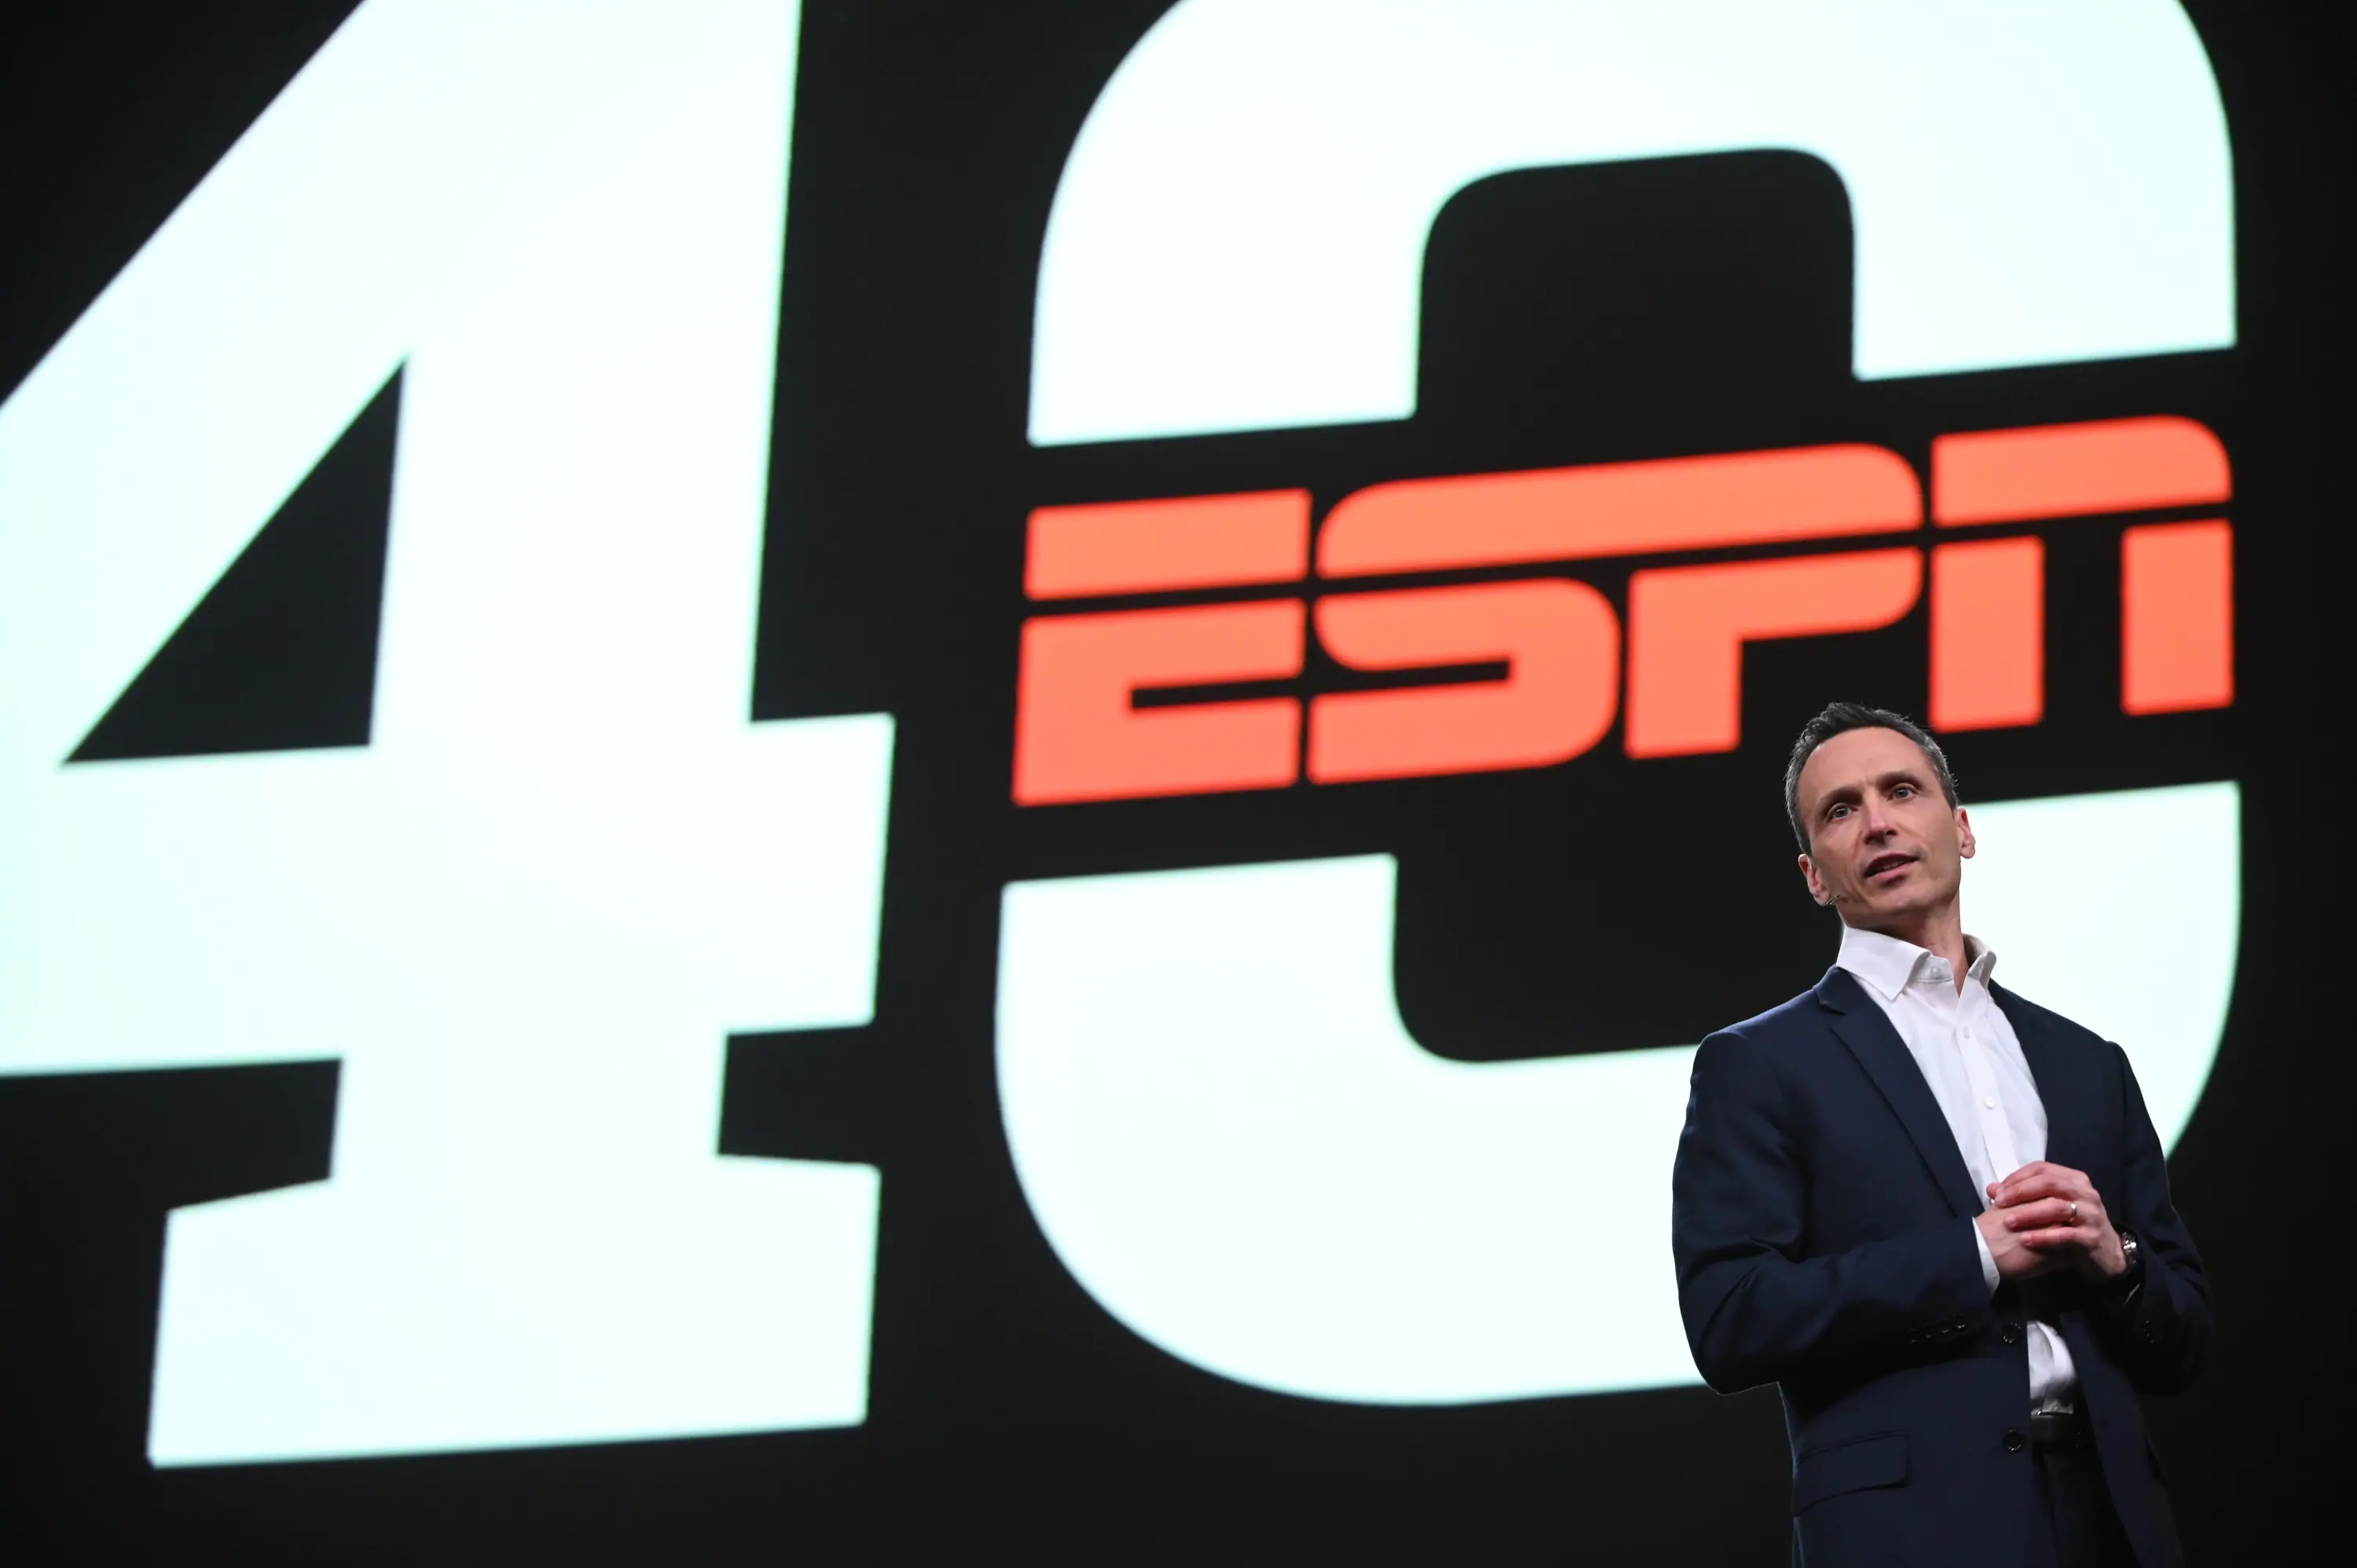 ESPN president Jimmy Pitaro onstage in front of a graphic for ESPN 40.